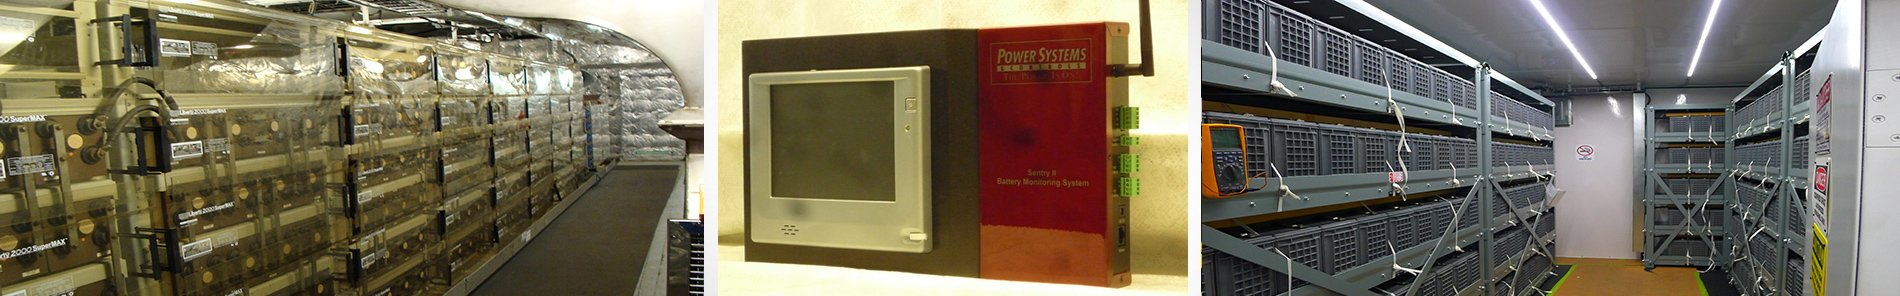 Power Systems & Controls